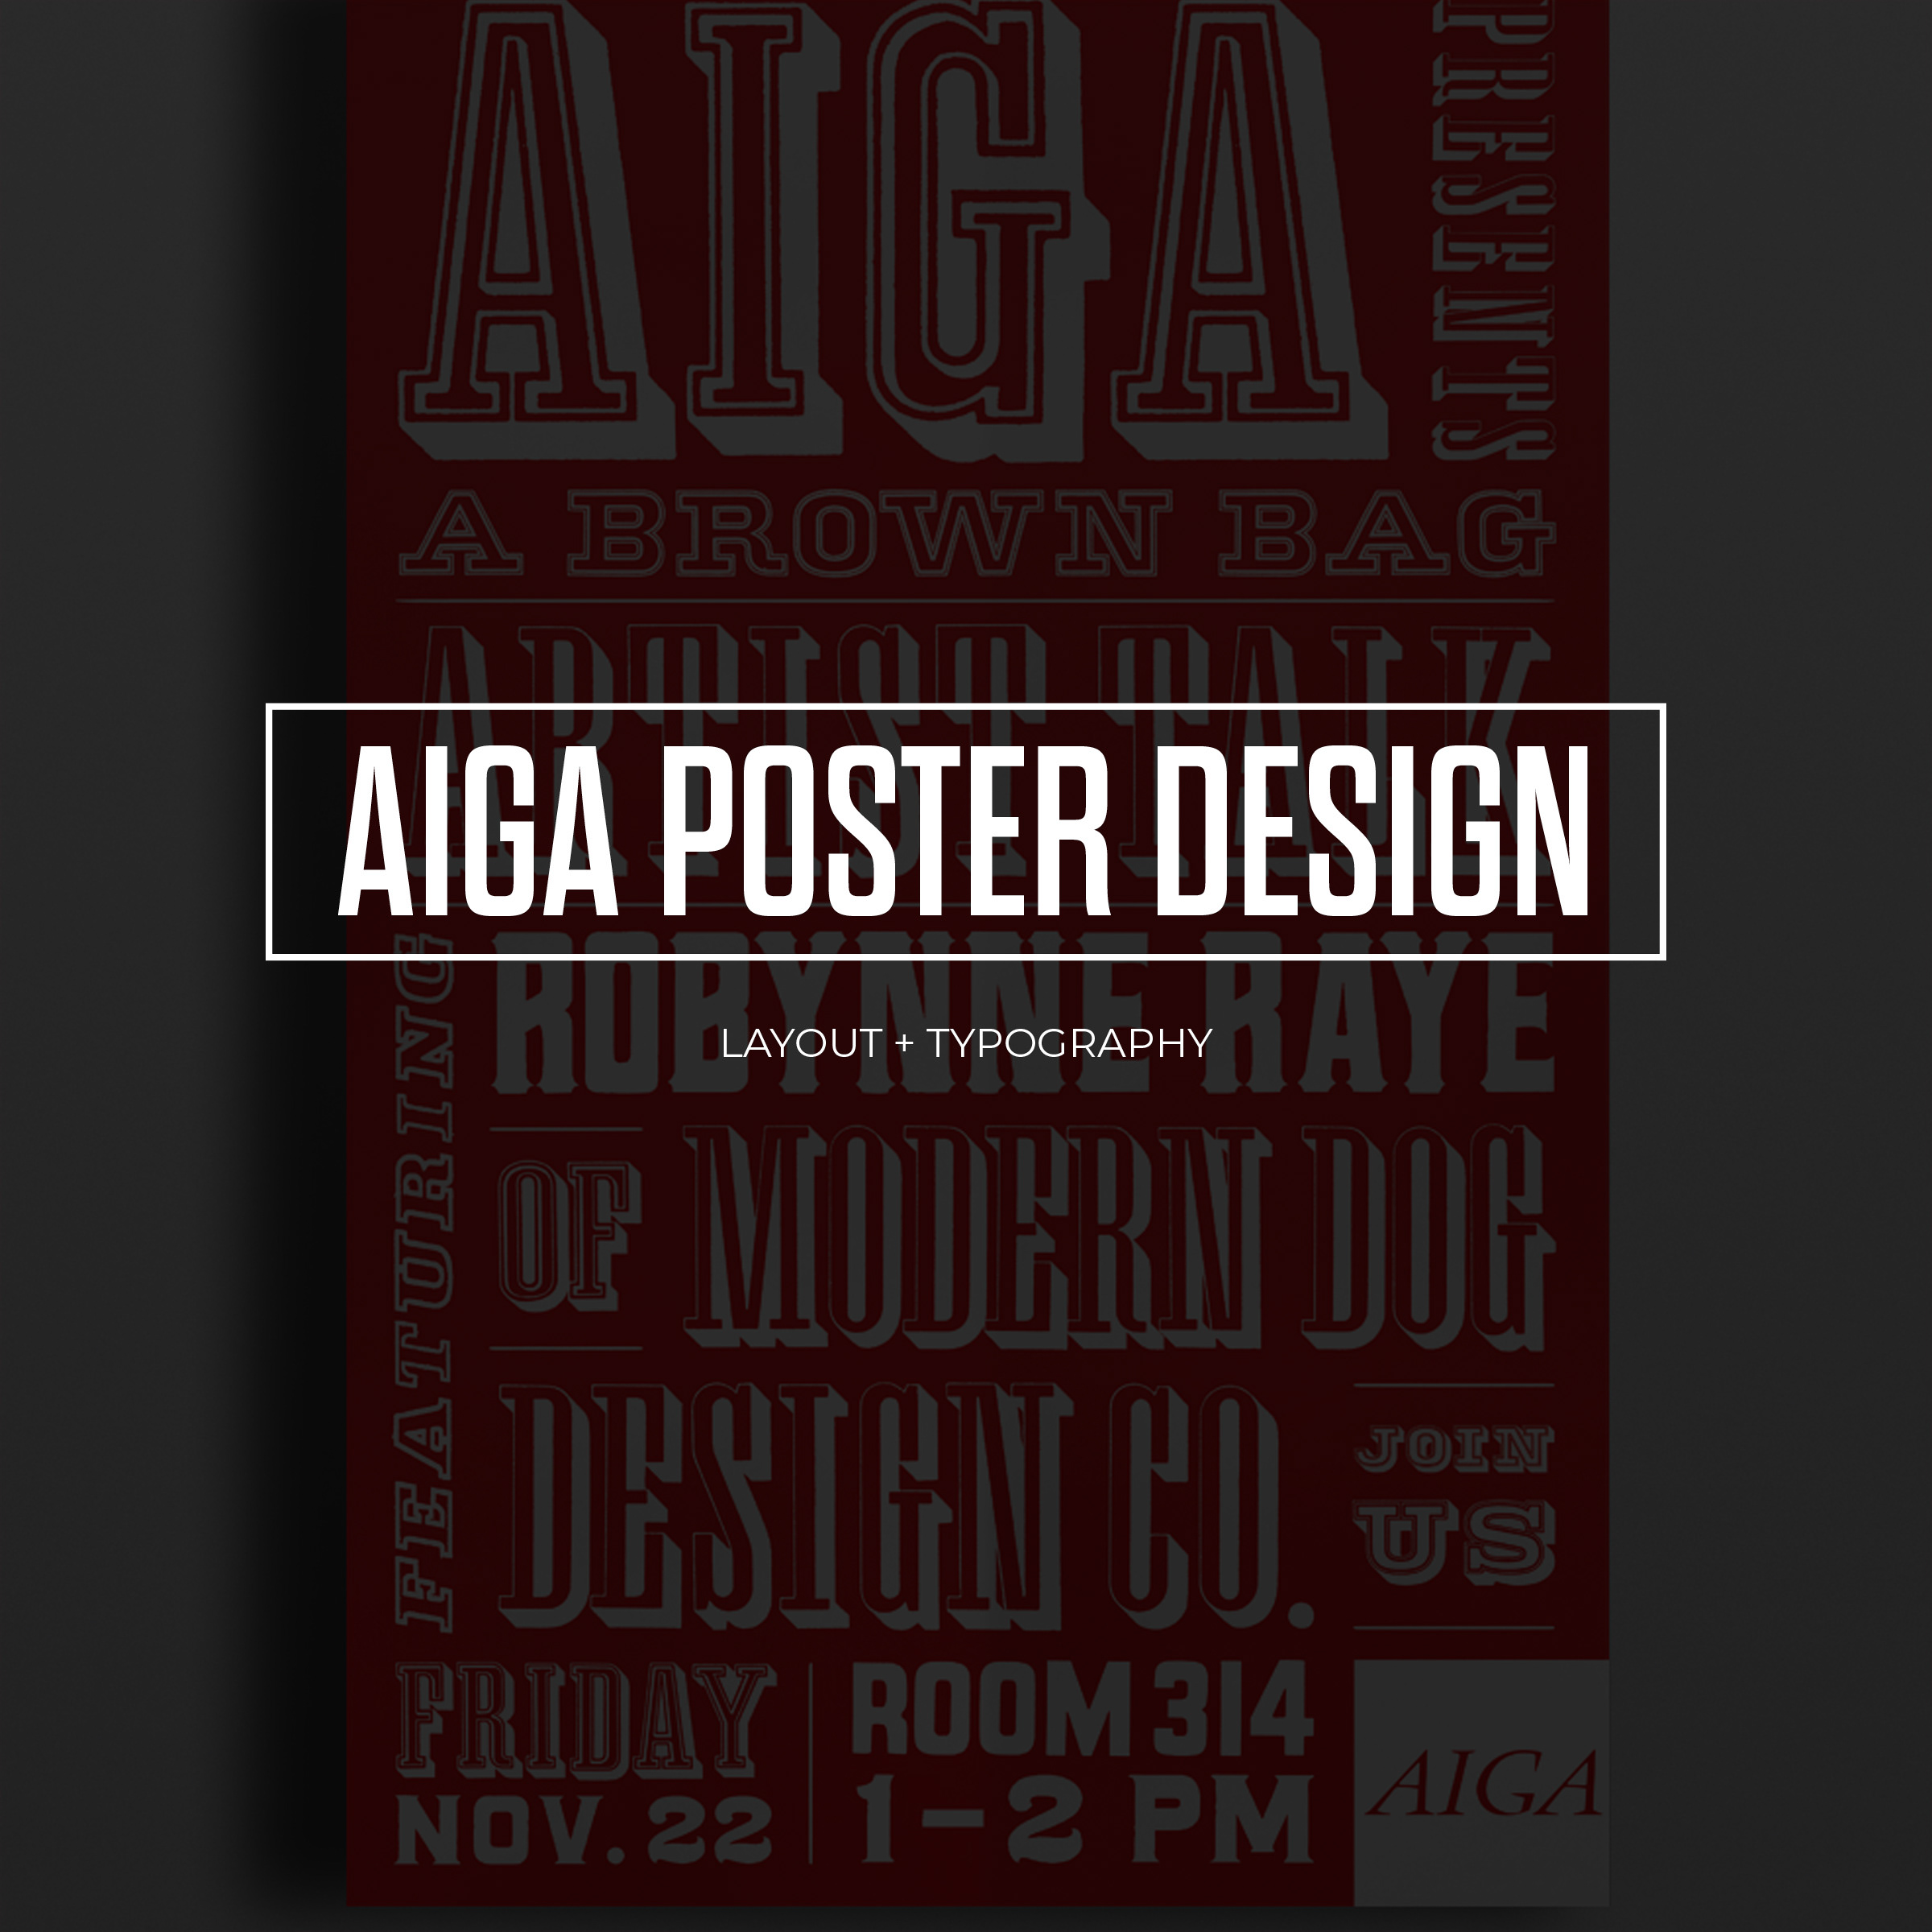 AIGA Talk with Robynne Raye of Modern Dog Type Poster